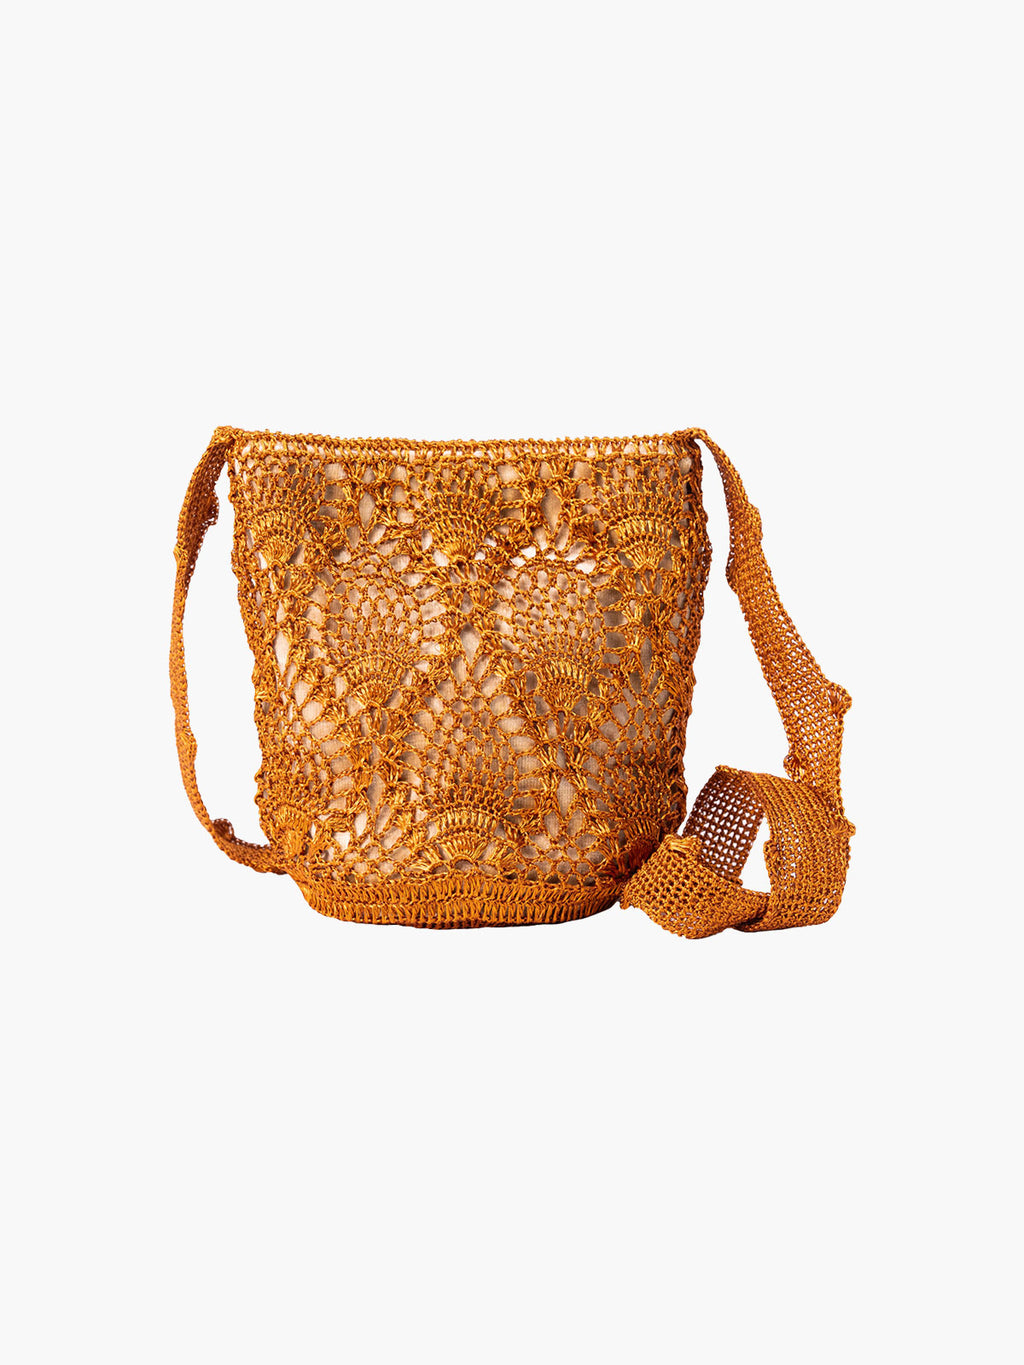 Pineapple Weave Mochila | Copper & Beige